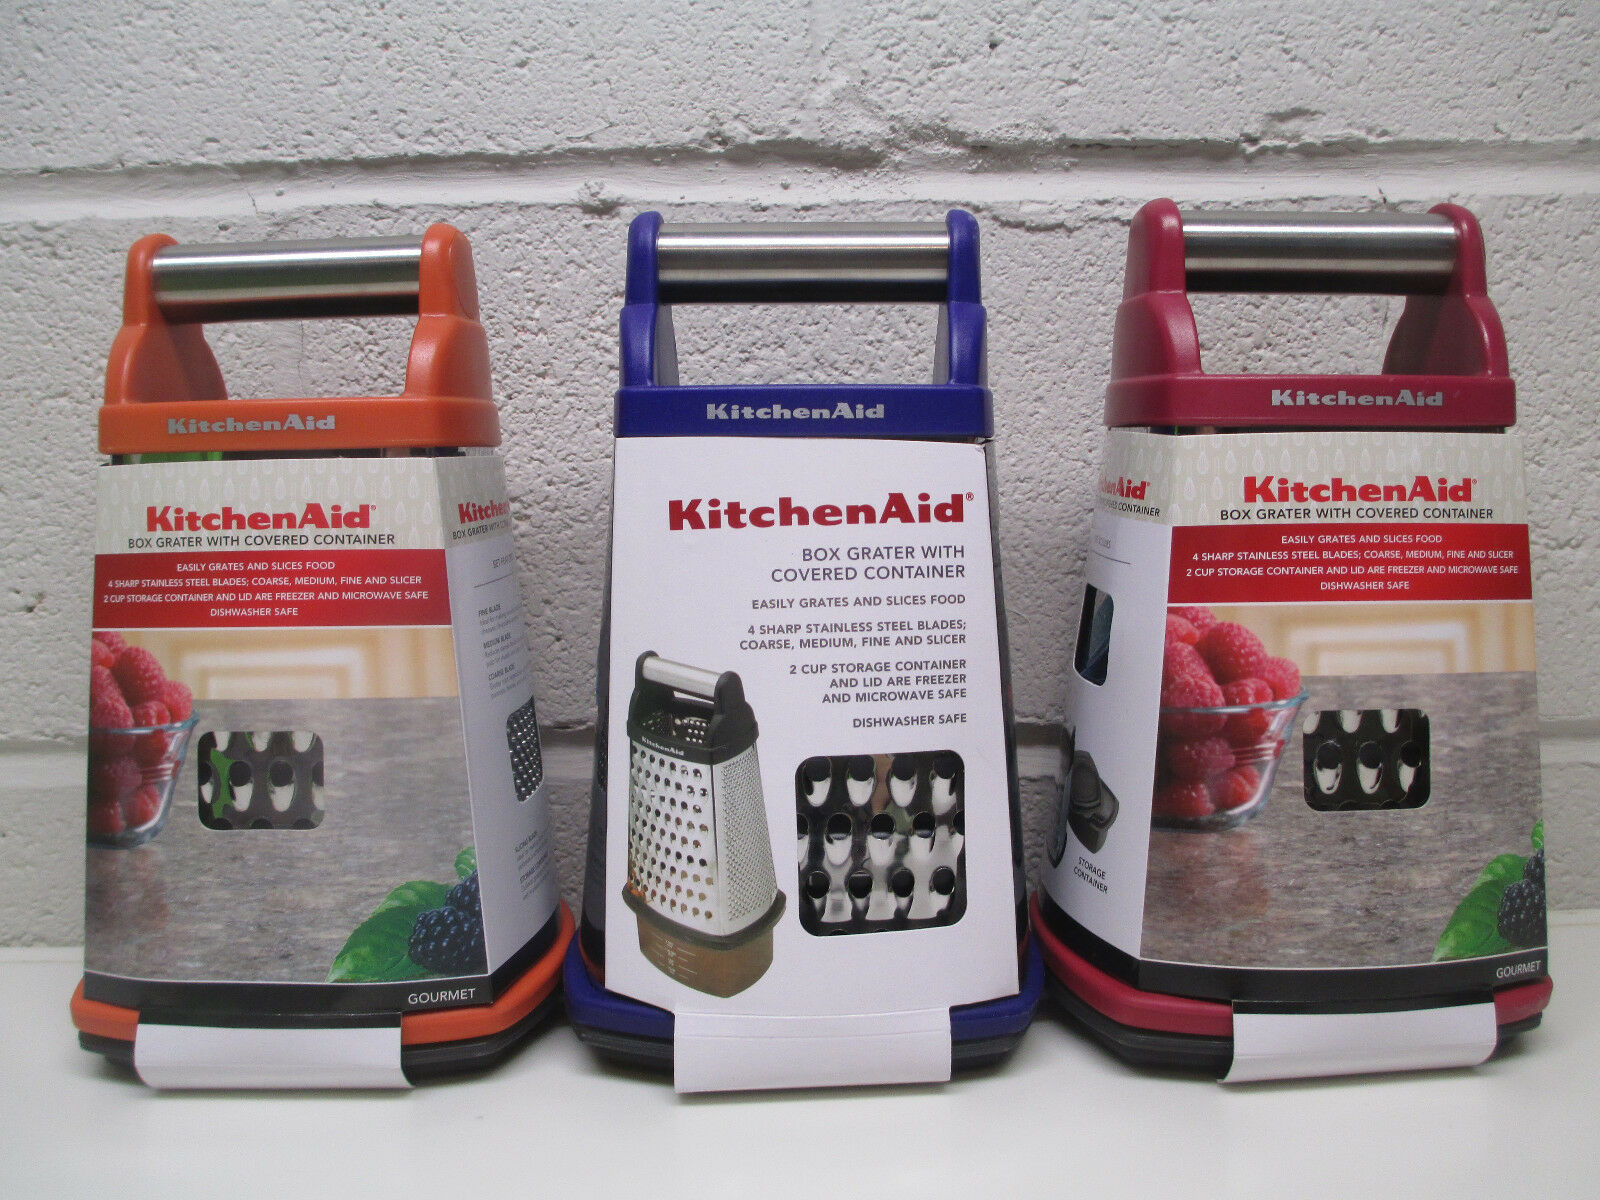 KitchenAid box grater with covered container in choice of co